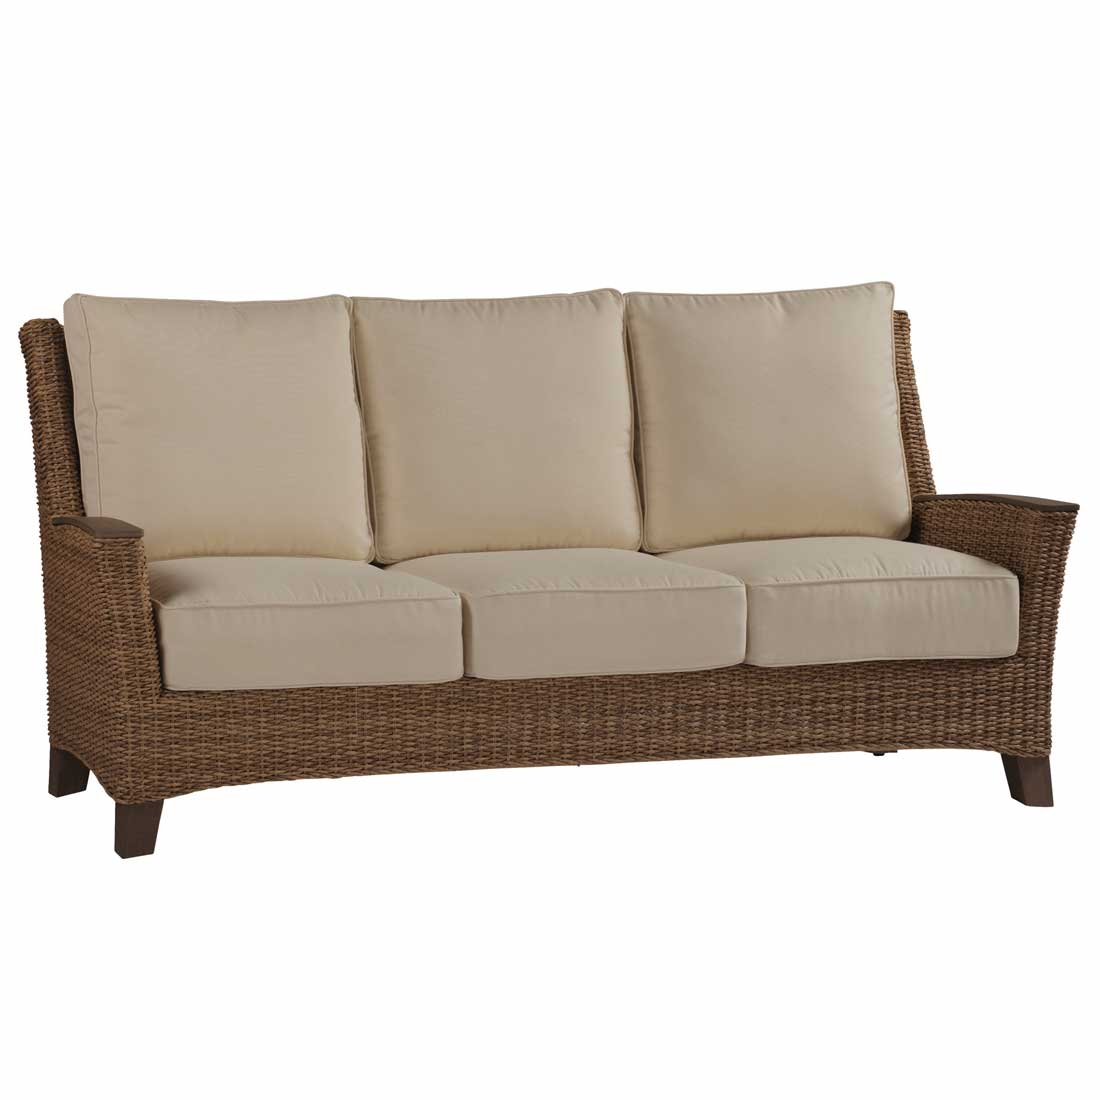 Seagrass Sectional Sofa Seagrass 5 Sectional Living Room Design Idea From Pottery Barn Homey